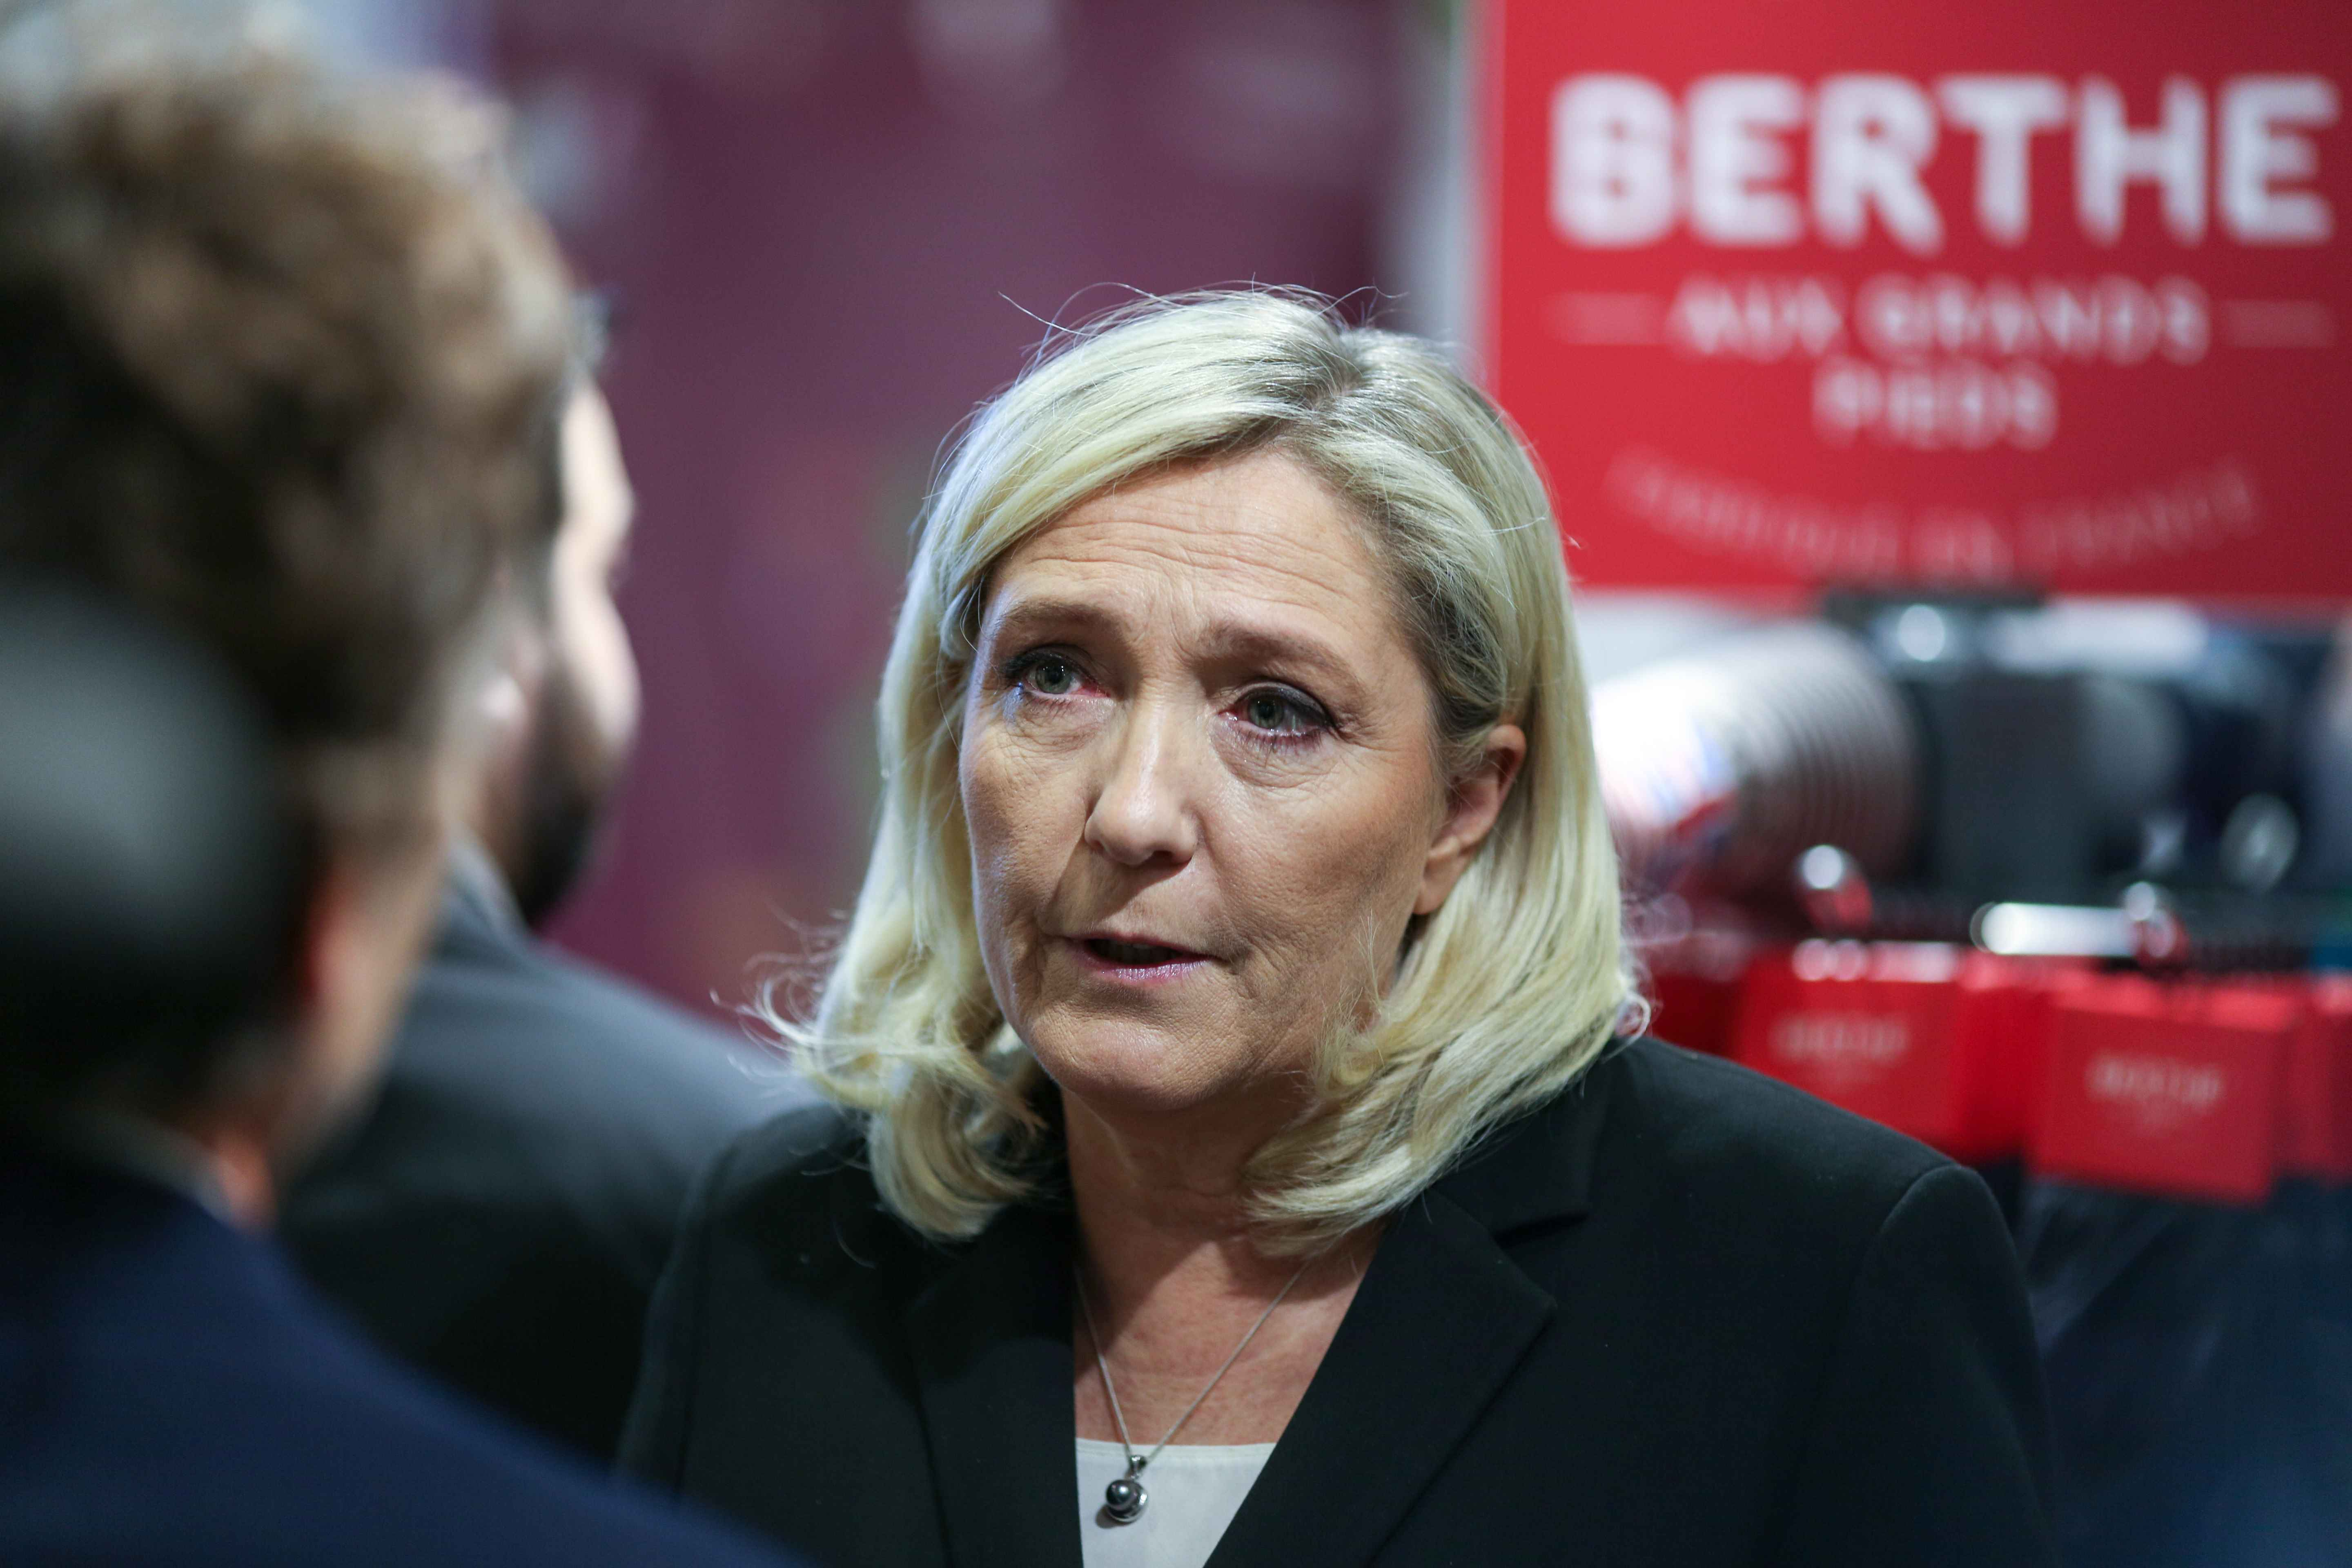 French far-right Rassemblement National (RN) party's president and MP Marine Le Pen visits the Made in France Fair, on November 9, 2019, at the Porte de Versailles, in Paris.